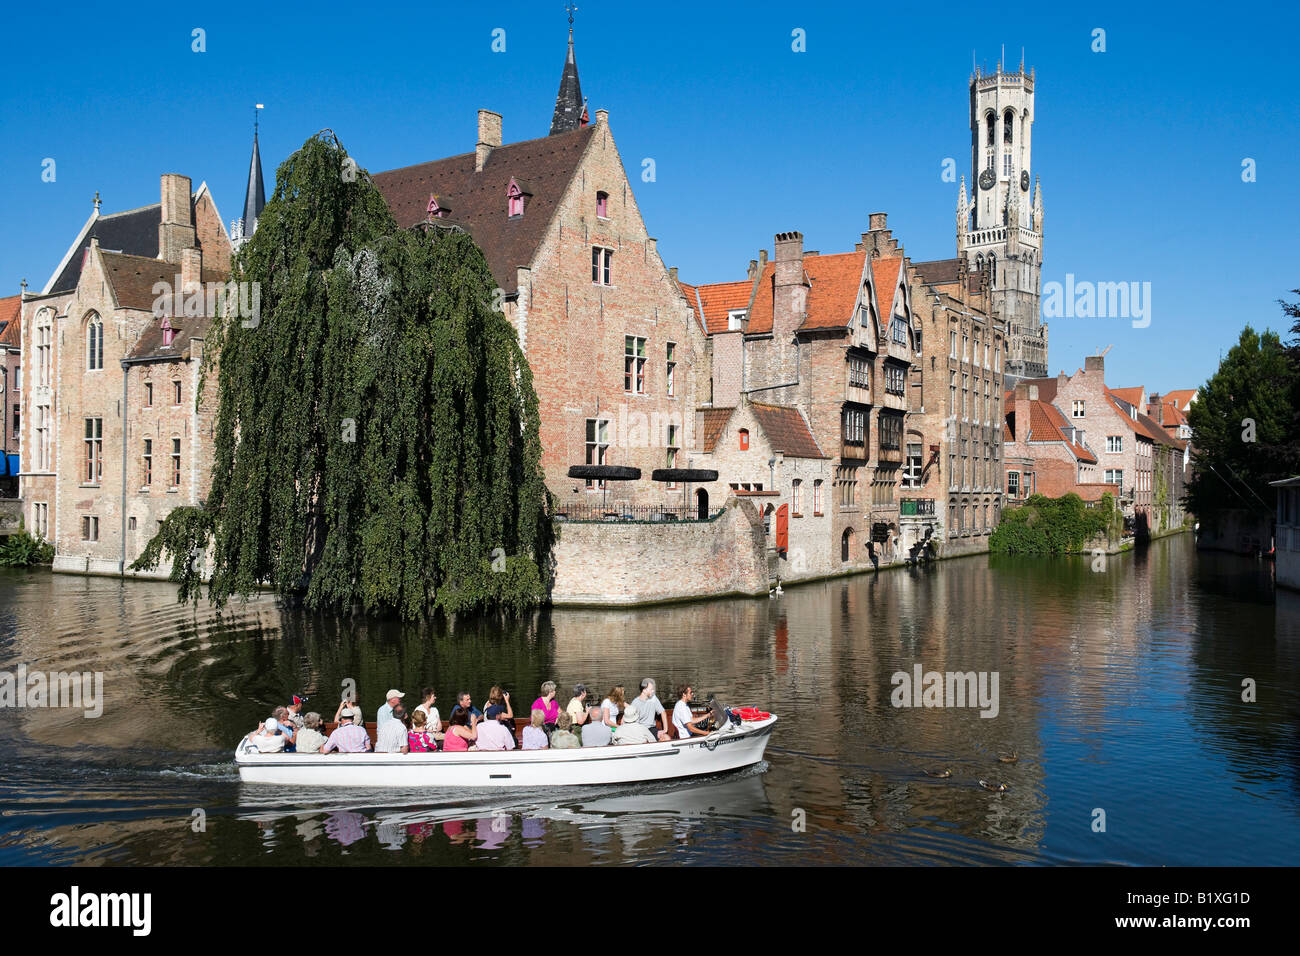 Boat trip on a canal in the old town, Bruges, Belgium - Stock Image